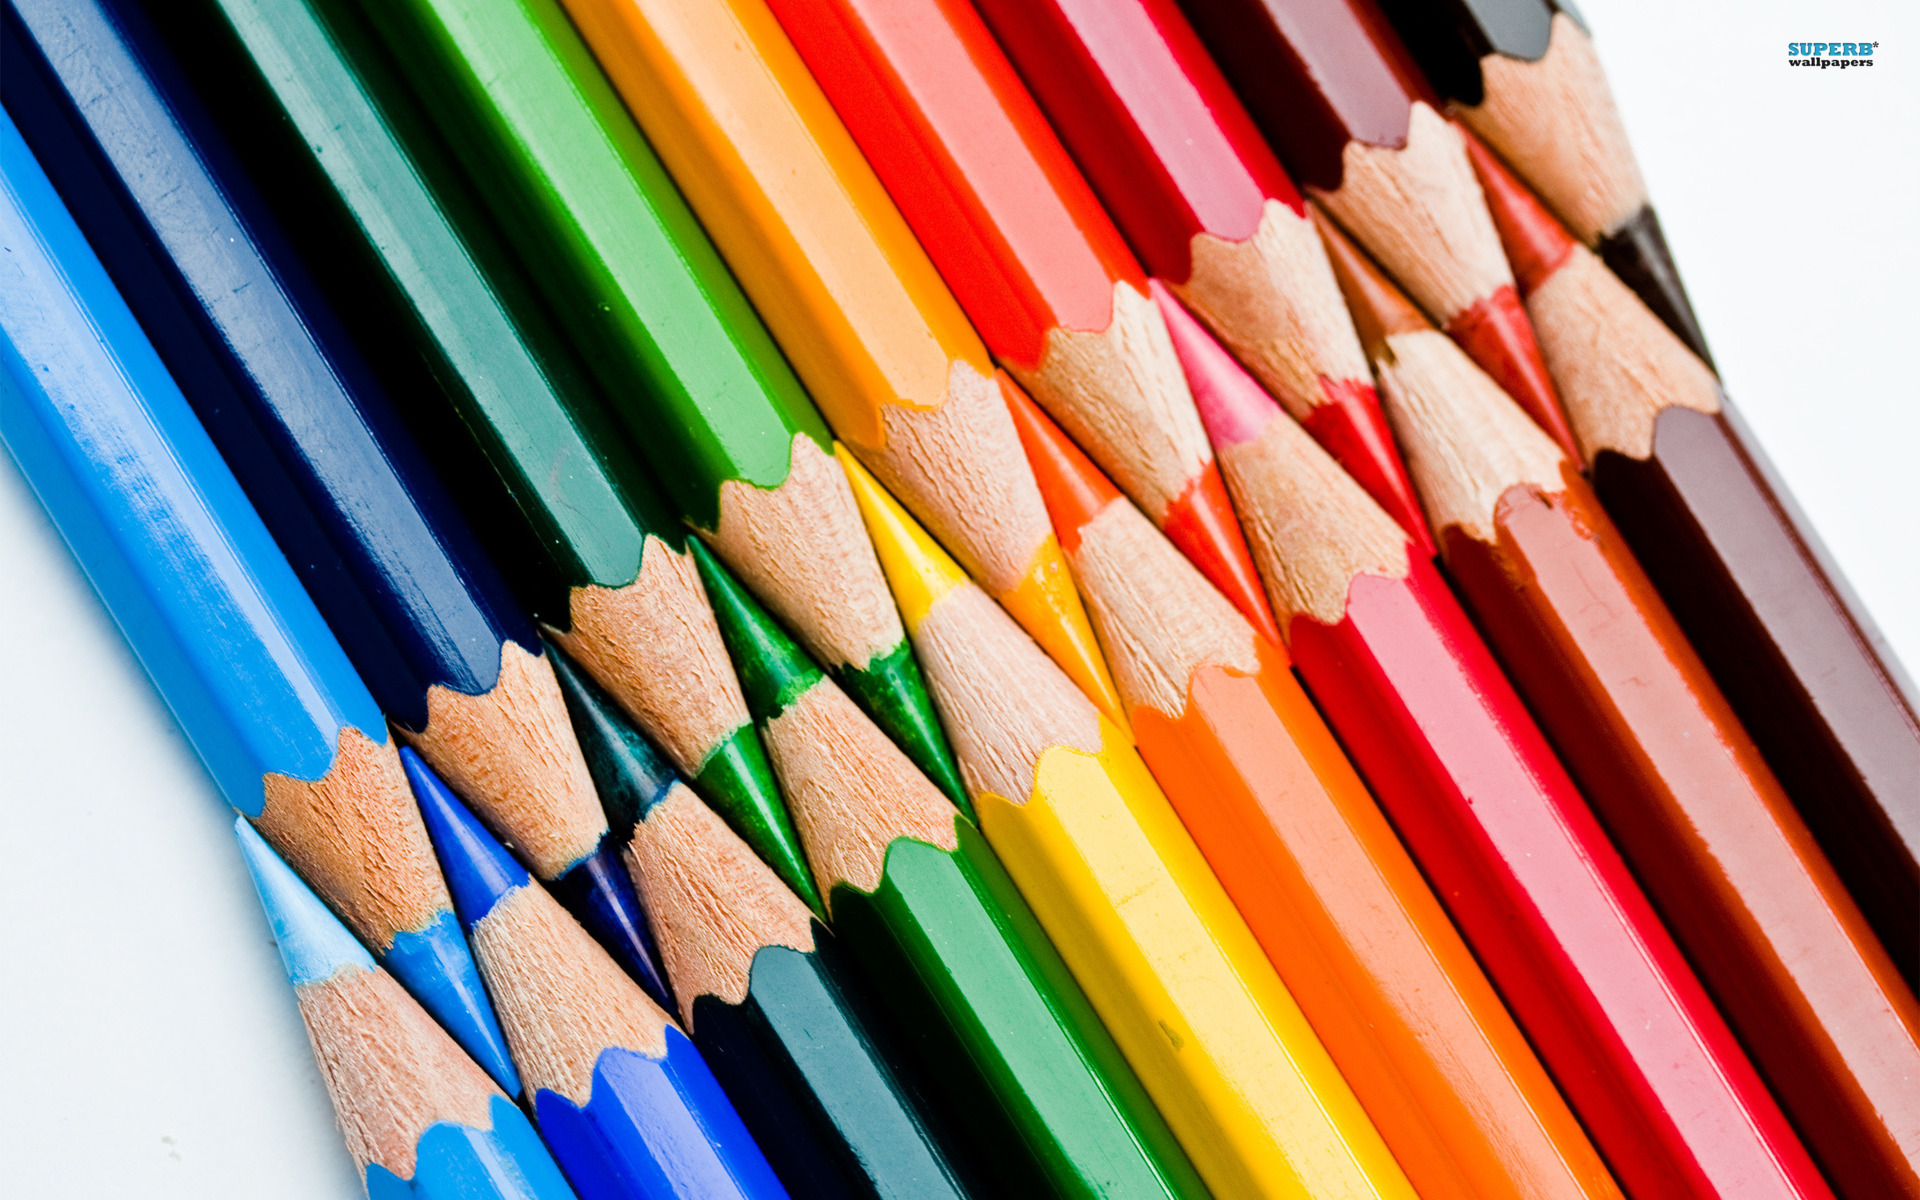 Colored pencils wallpaper 1920x1200